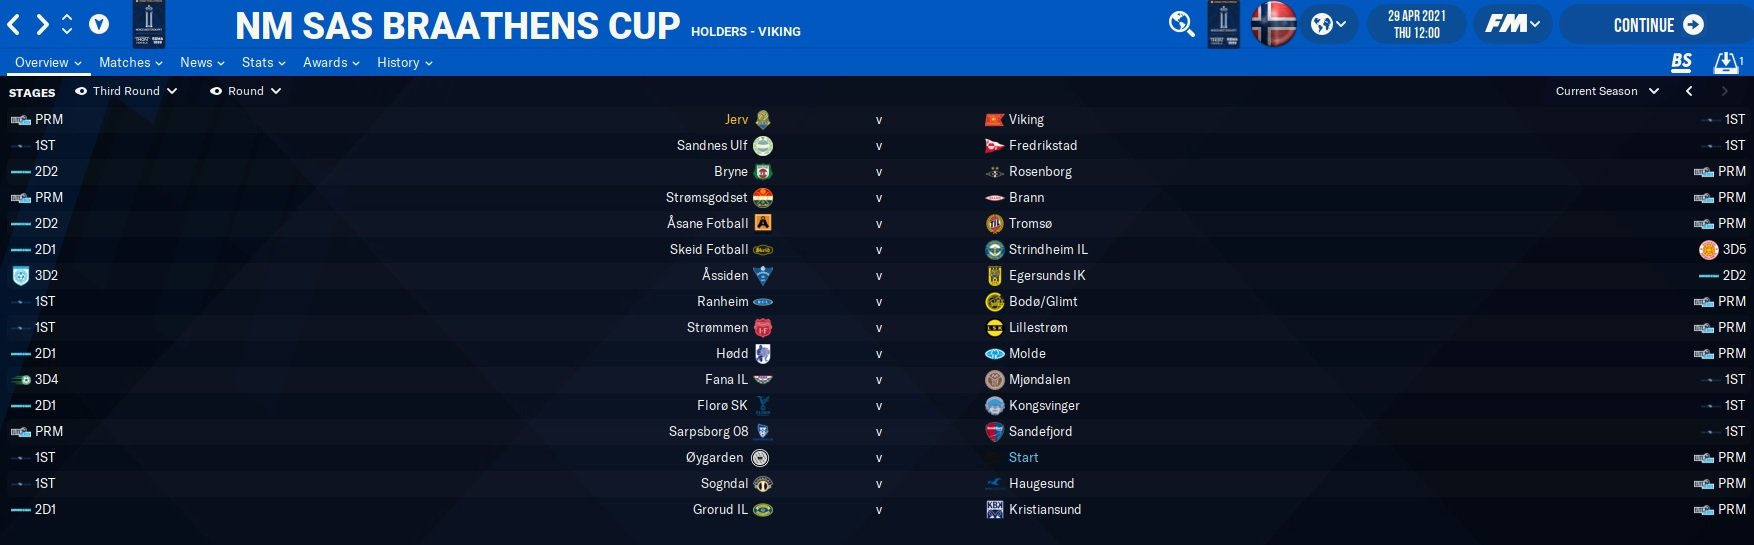 cup draw 3rd round.jpg